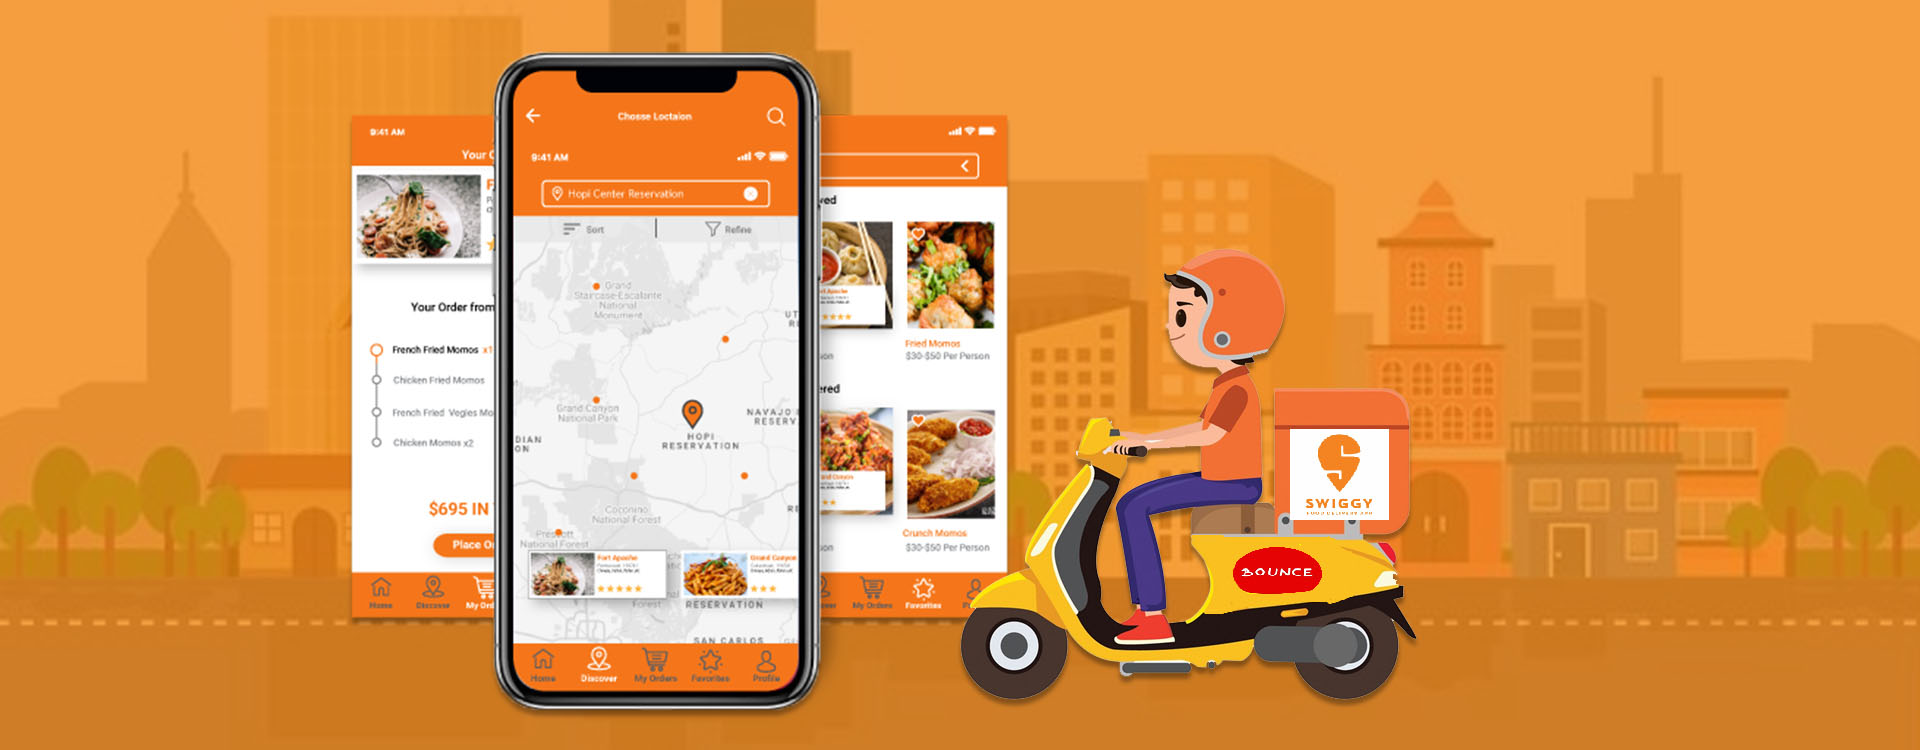 How Swiggy Changed the Online Food Ordering Industry